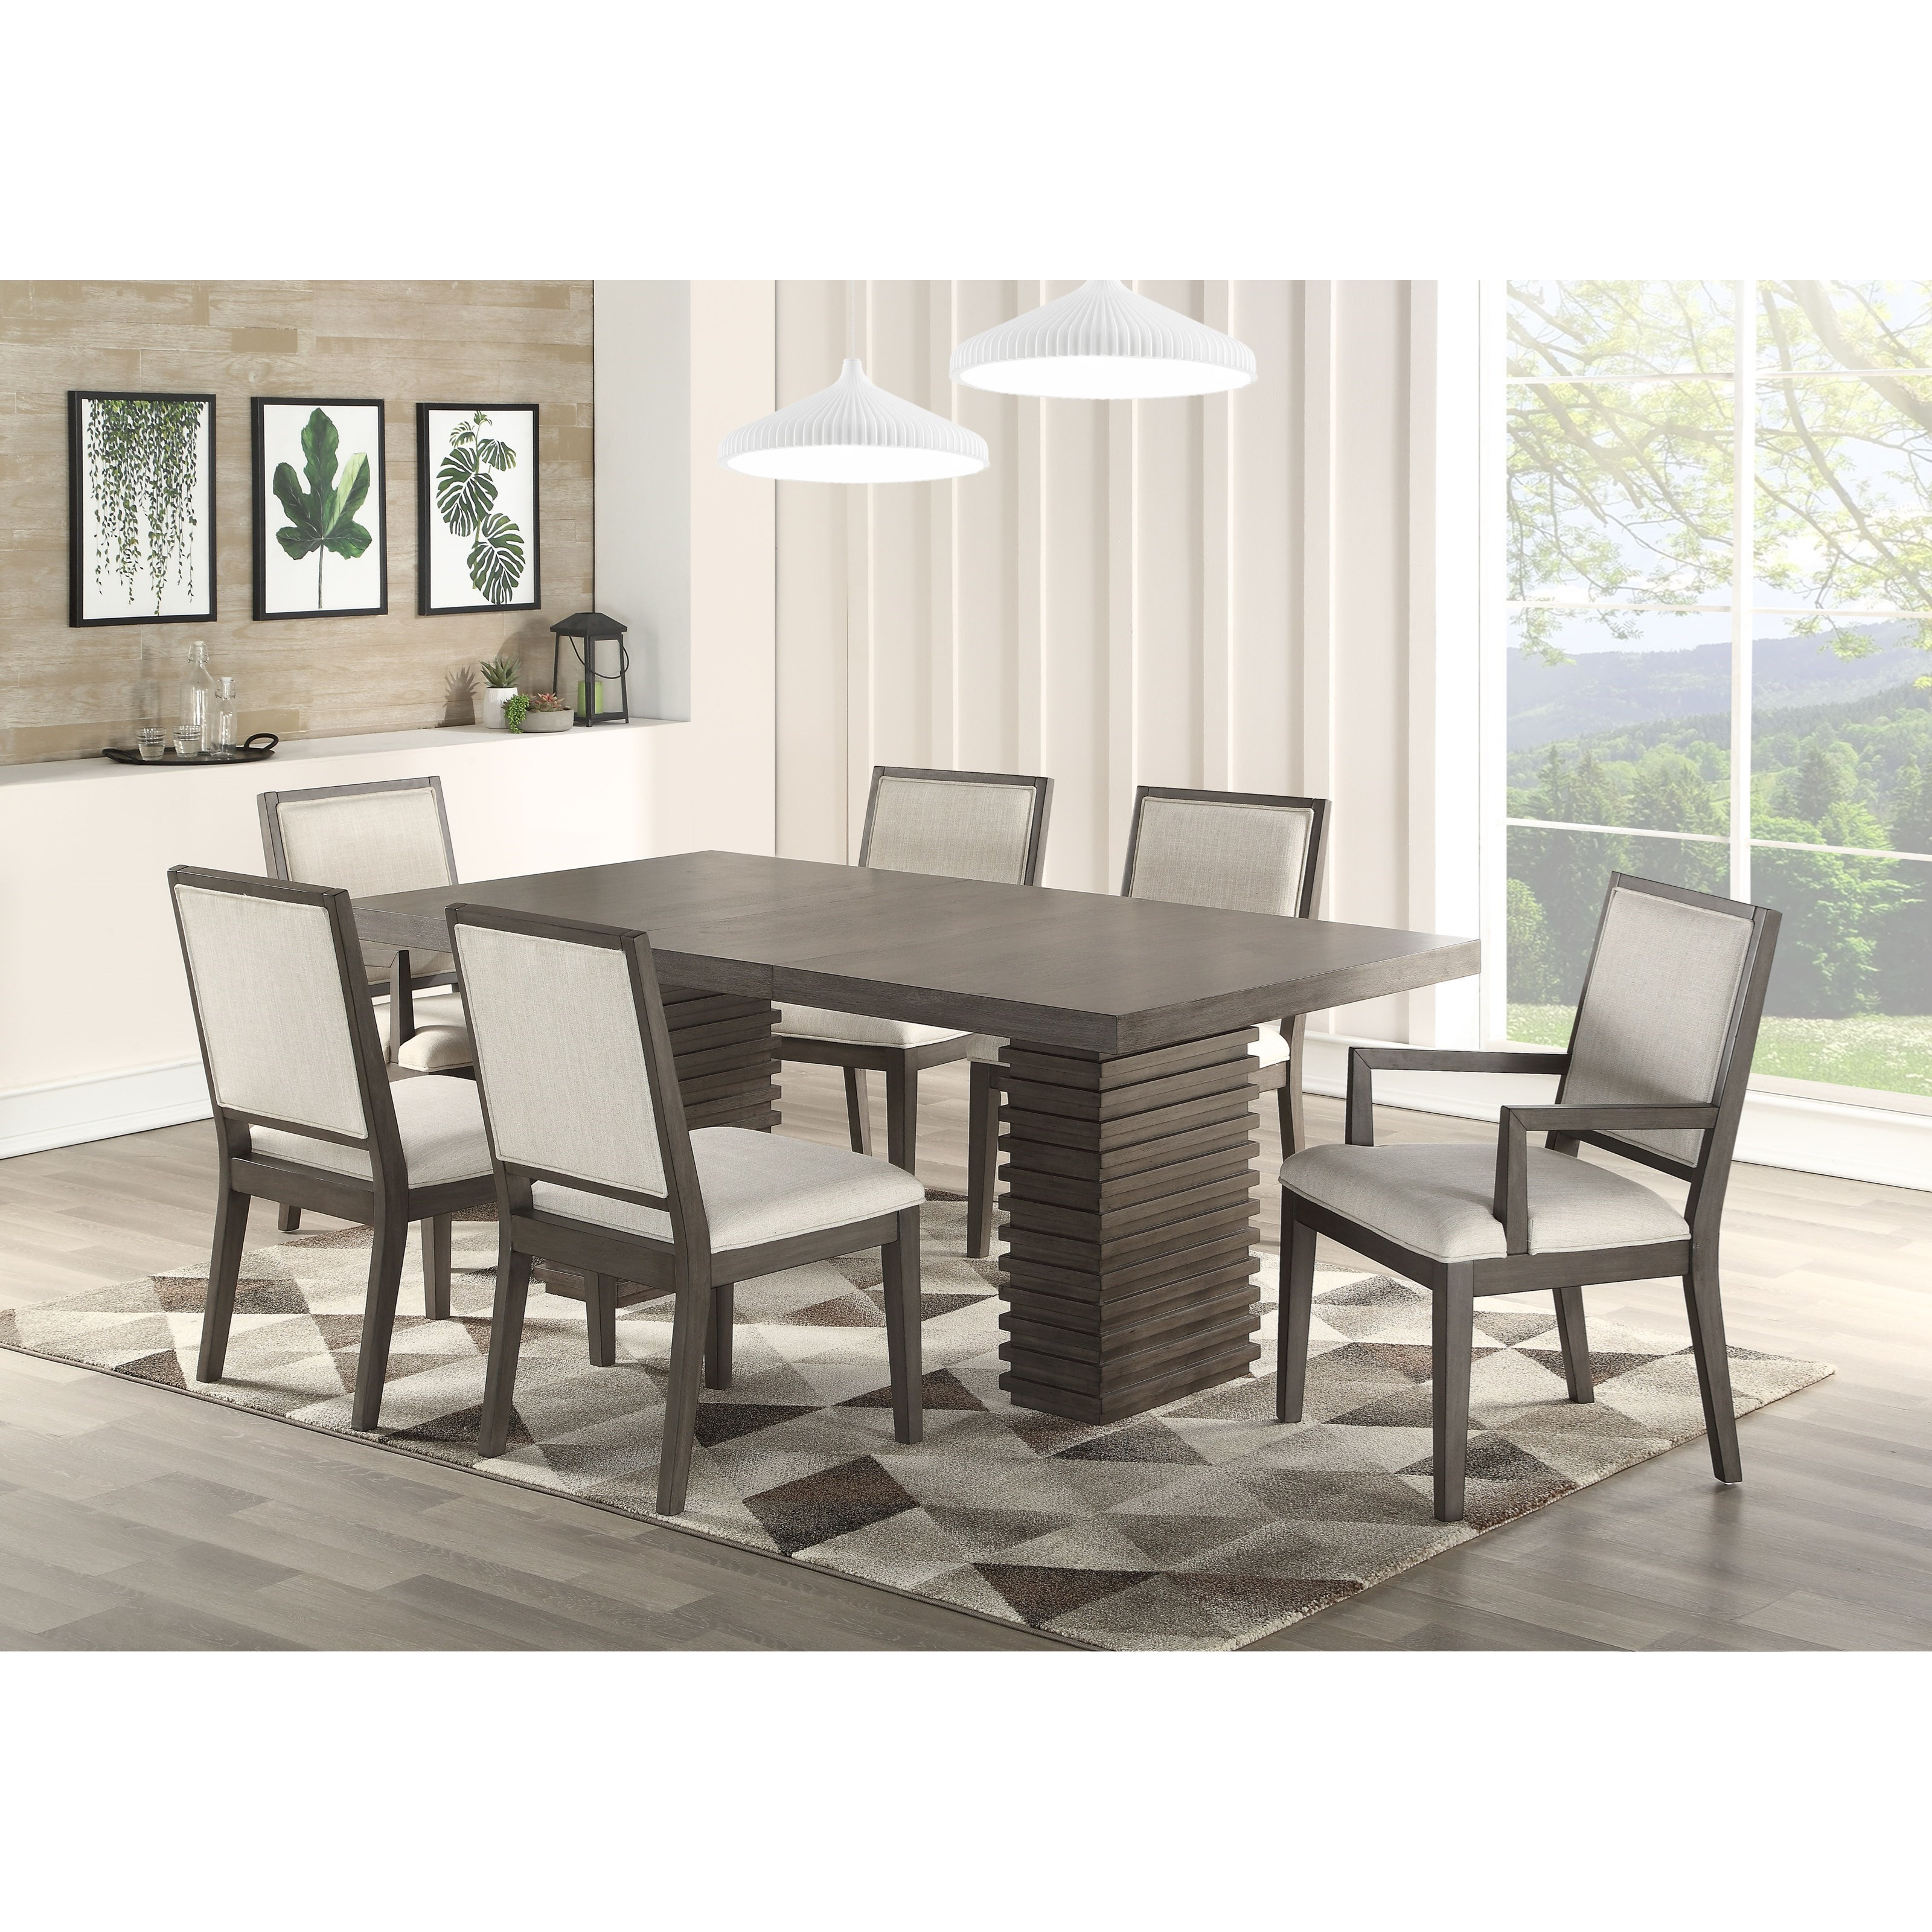 Mila 7 Piece Dining and Chair Set by Steve Silver at Standard Furniture